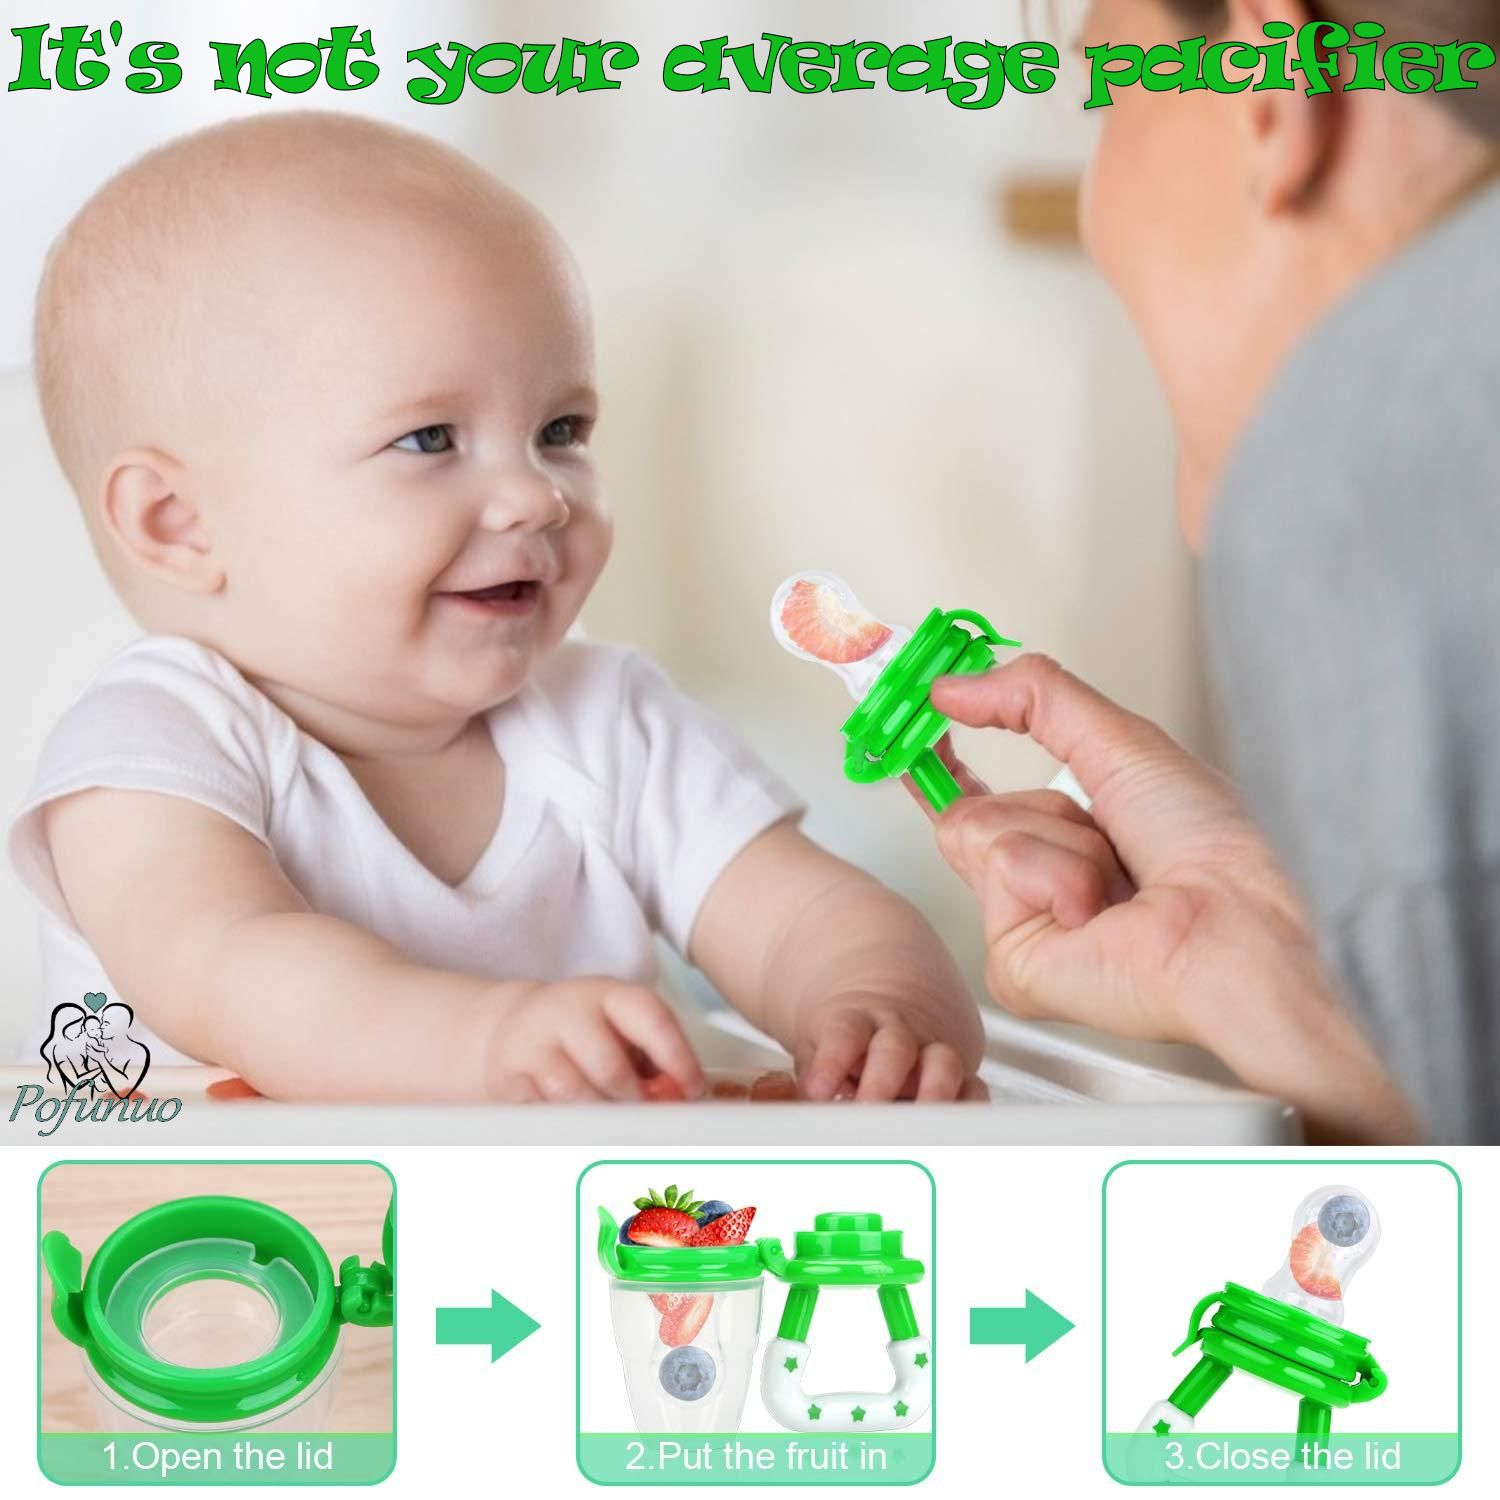 does anybody use a pacifier to diet